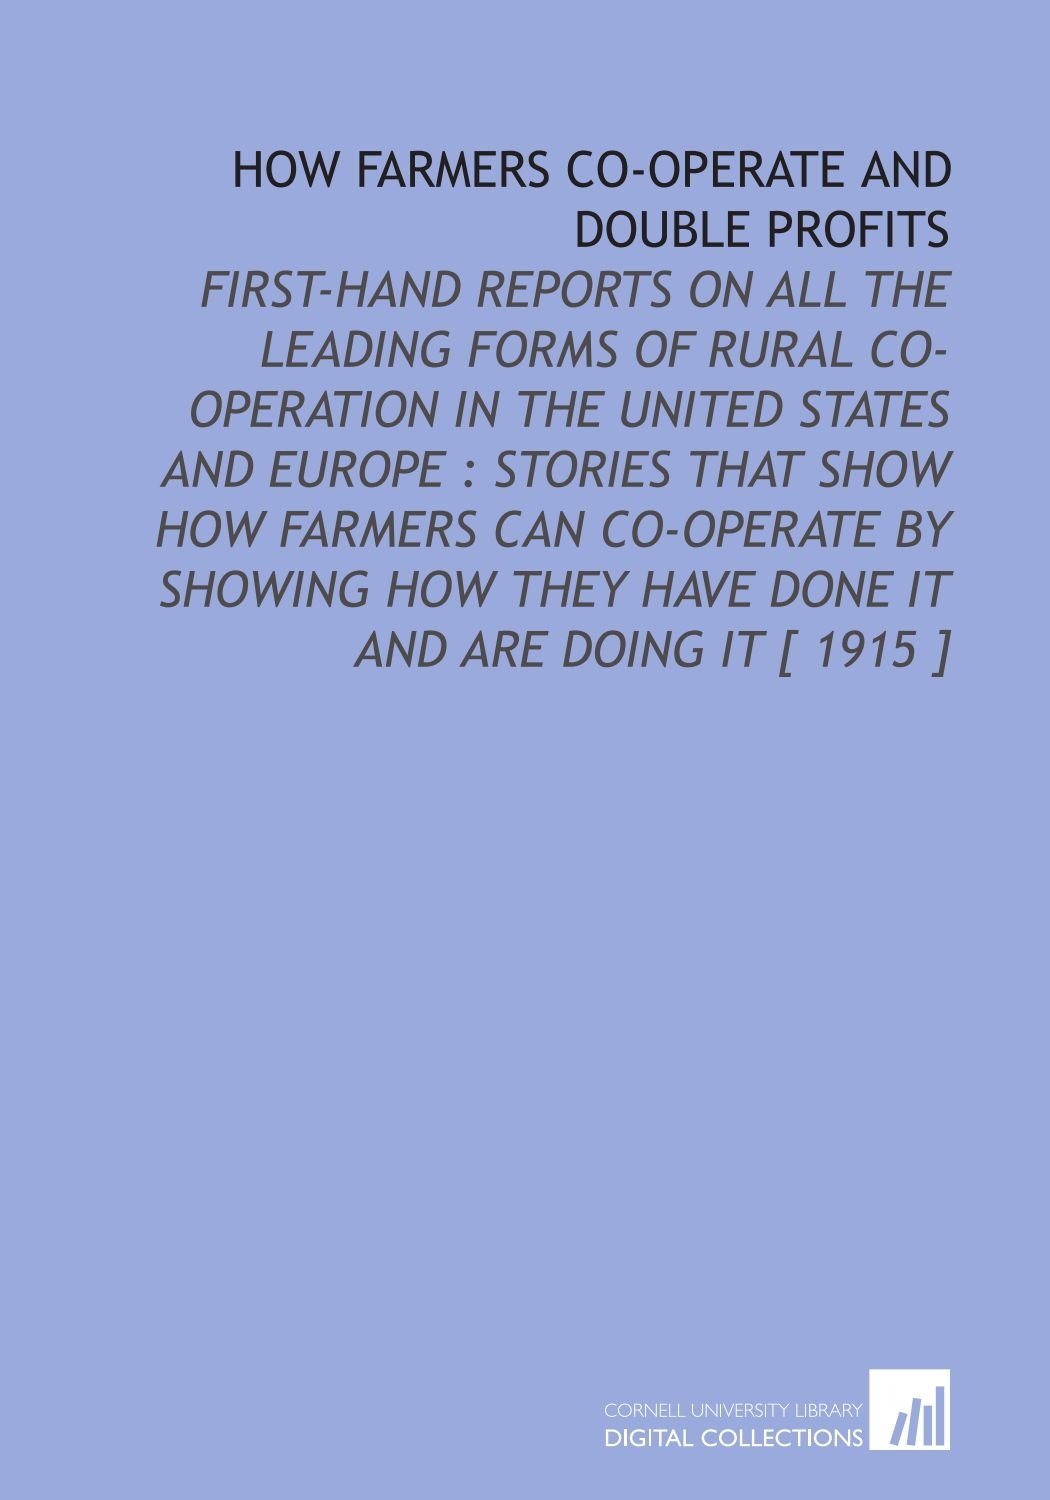 How Farmers Co-Operate and Double Profits: First-Hand Reports on All the Leading Forms of Rural Co-Operation in the United States and Europe : Stories They Have Done it and Are Doing it [ 1915 ] PDF